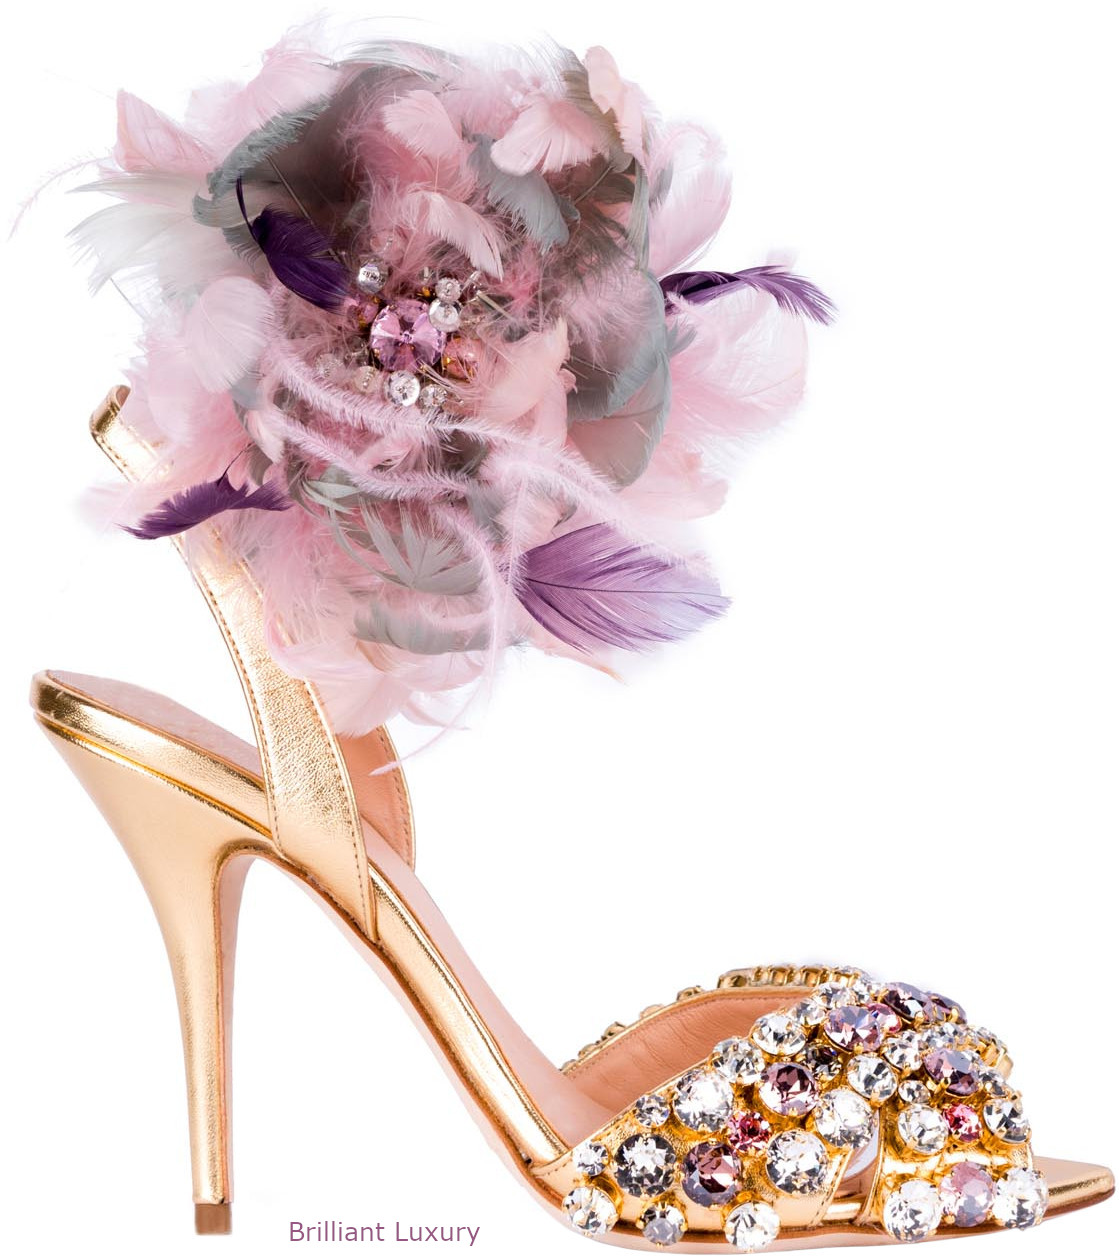 Gedebe bejeweled and feathered sandals in gold and pink